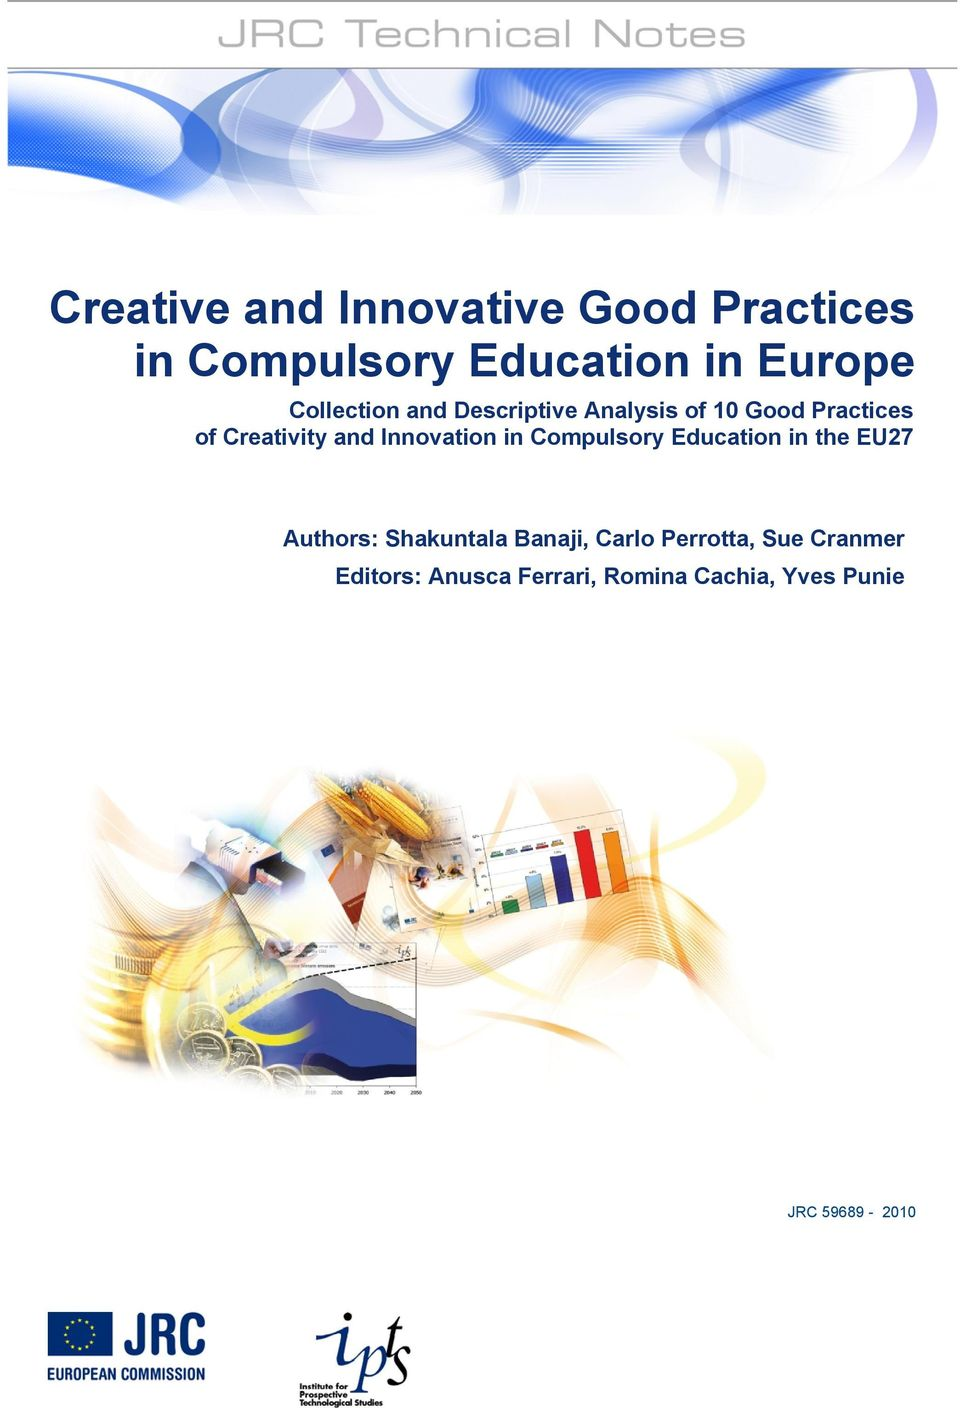 Innovation in Compulsory Education in the EU27 Authors: Shakuntala Banaji,